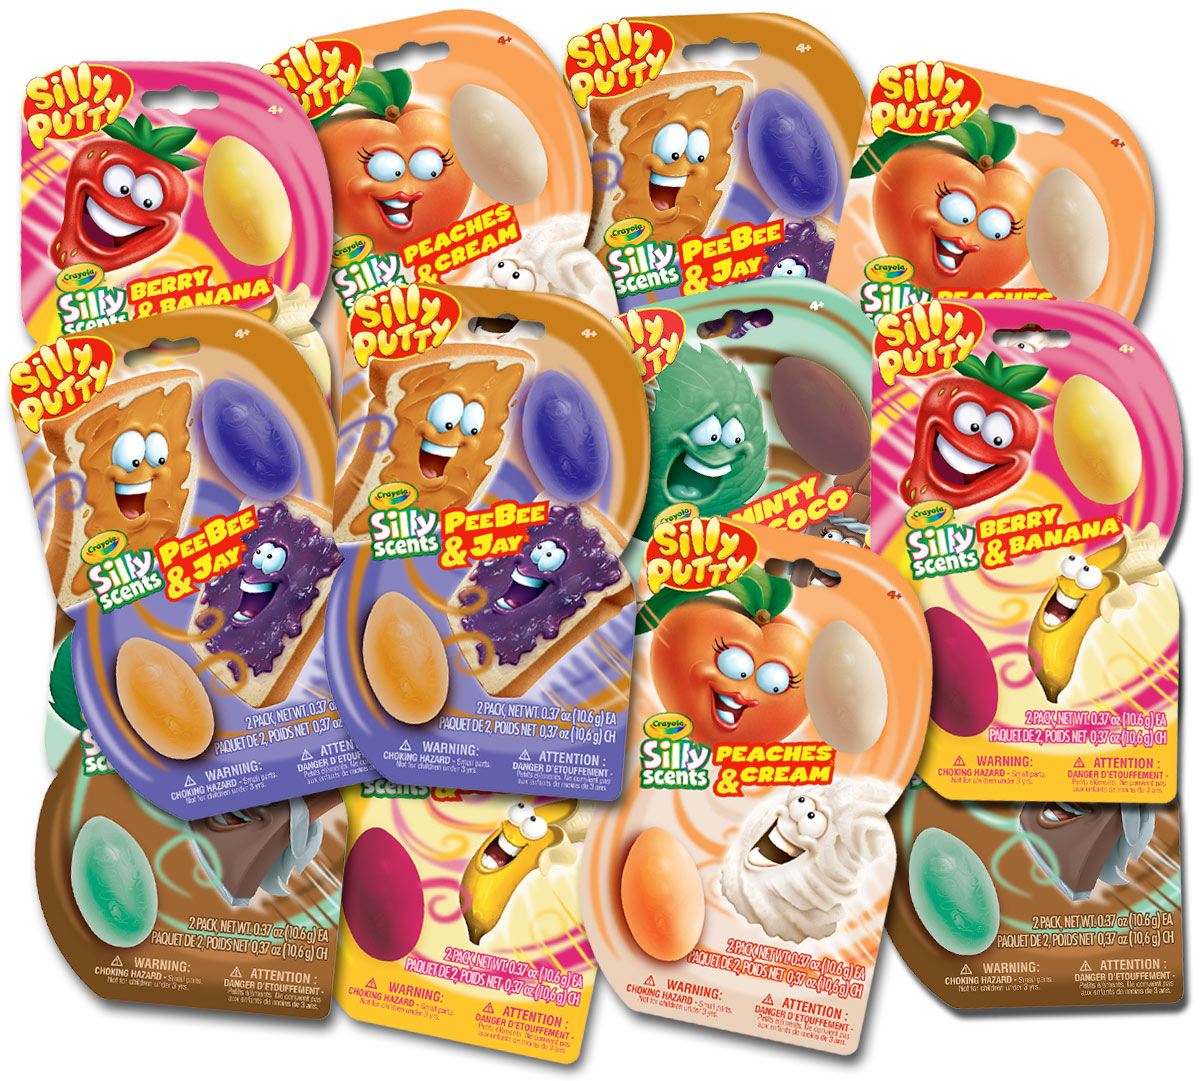 Silly Scents Silly Putty, Mixed Scents, 2 Count